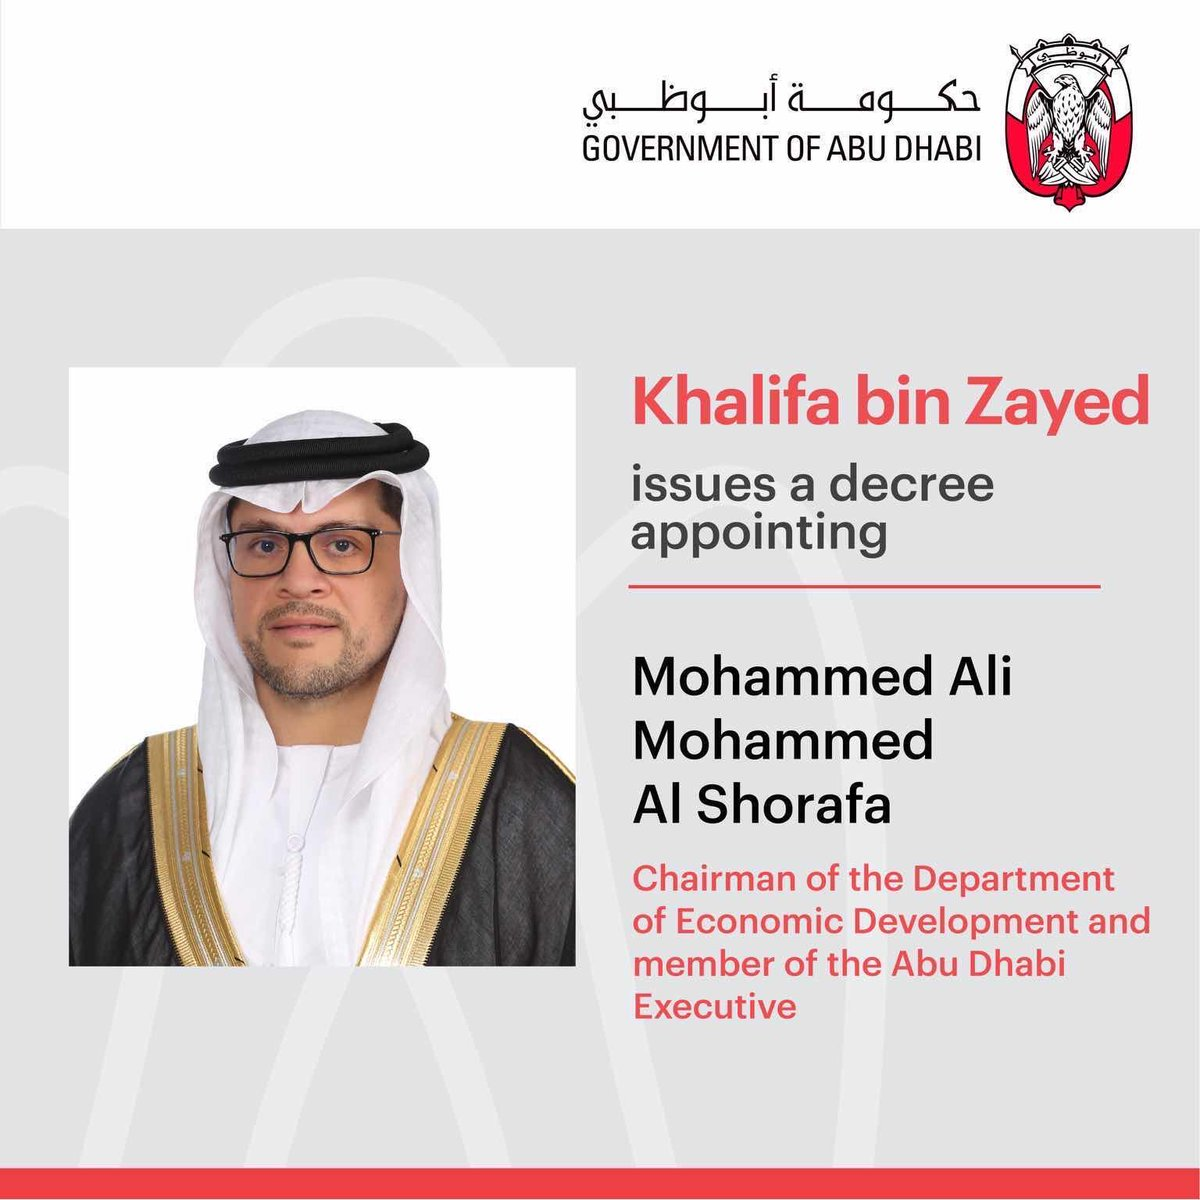 In his capacity as Ruler of Abu Dhabi, Sheikh Khalifa bin Zayed issues a decree appointing Mohammed Ali Al Shorafa Al Hammadi, as Chairman of the Department of Economic Development, and member of the Abu Dhabi Executive Council. https://t.co/T5ItL9ZmX8